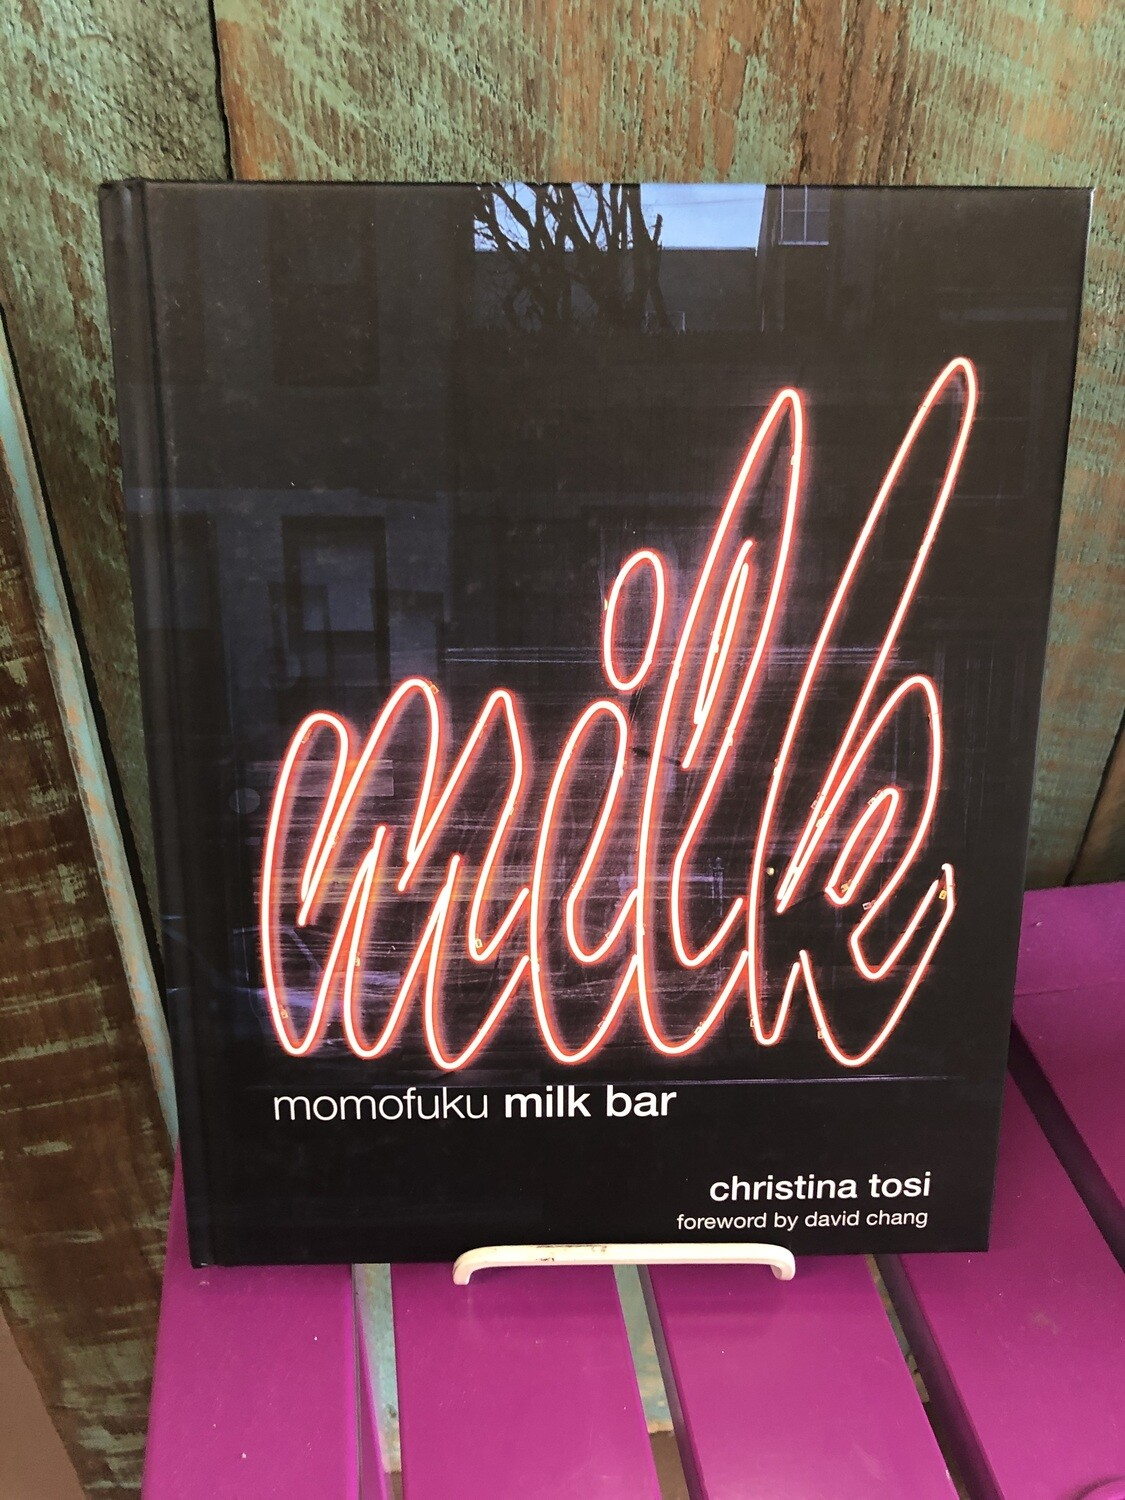 Milk Momofuki Milk Bar